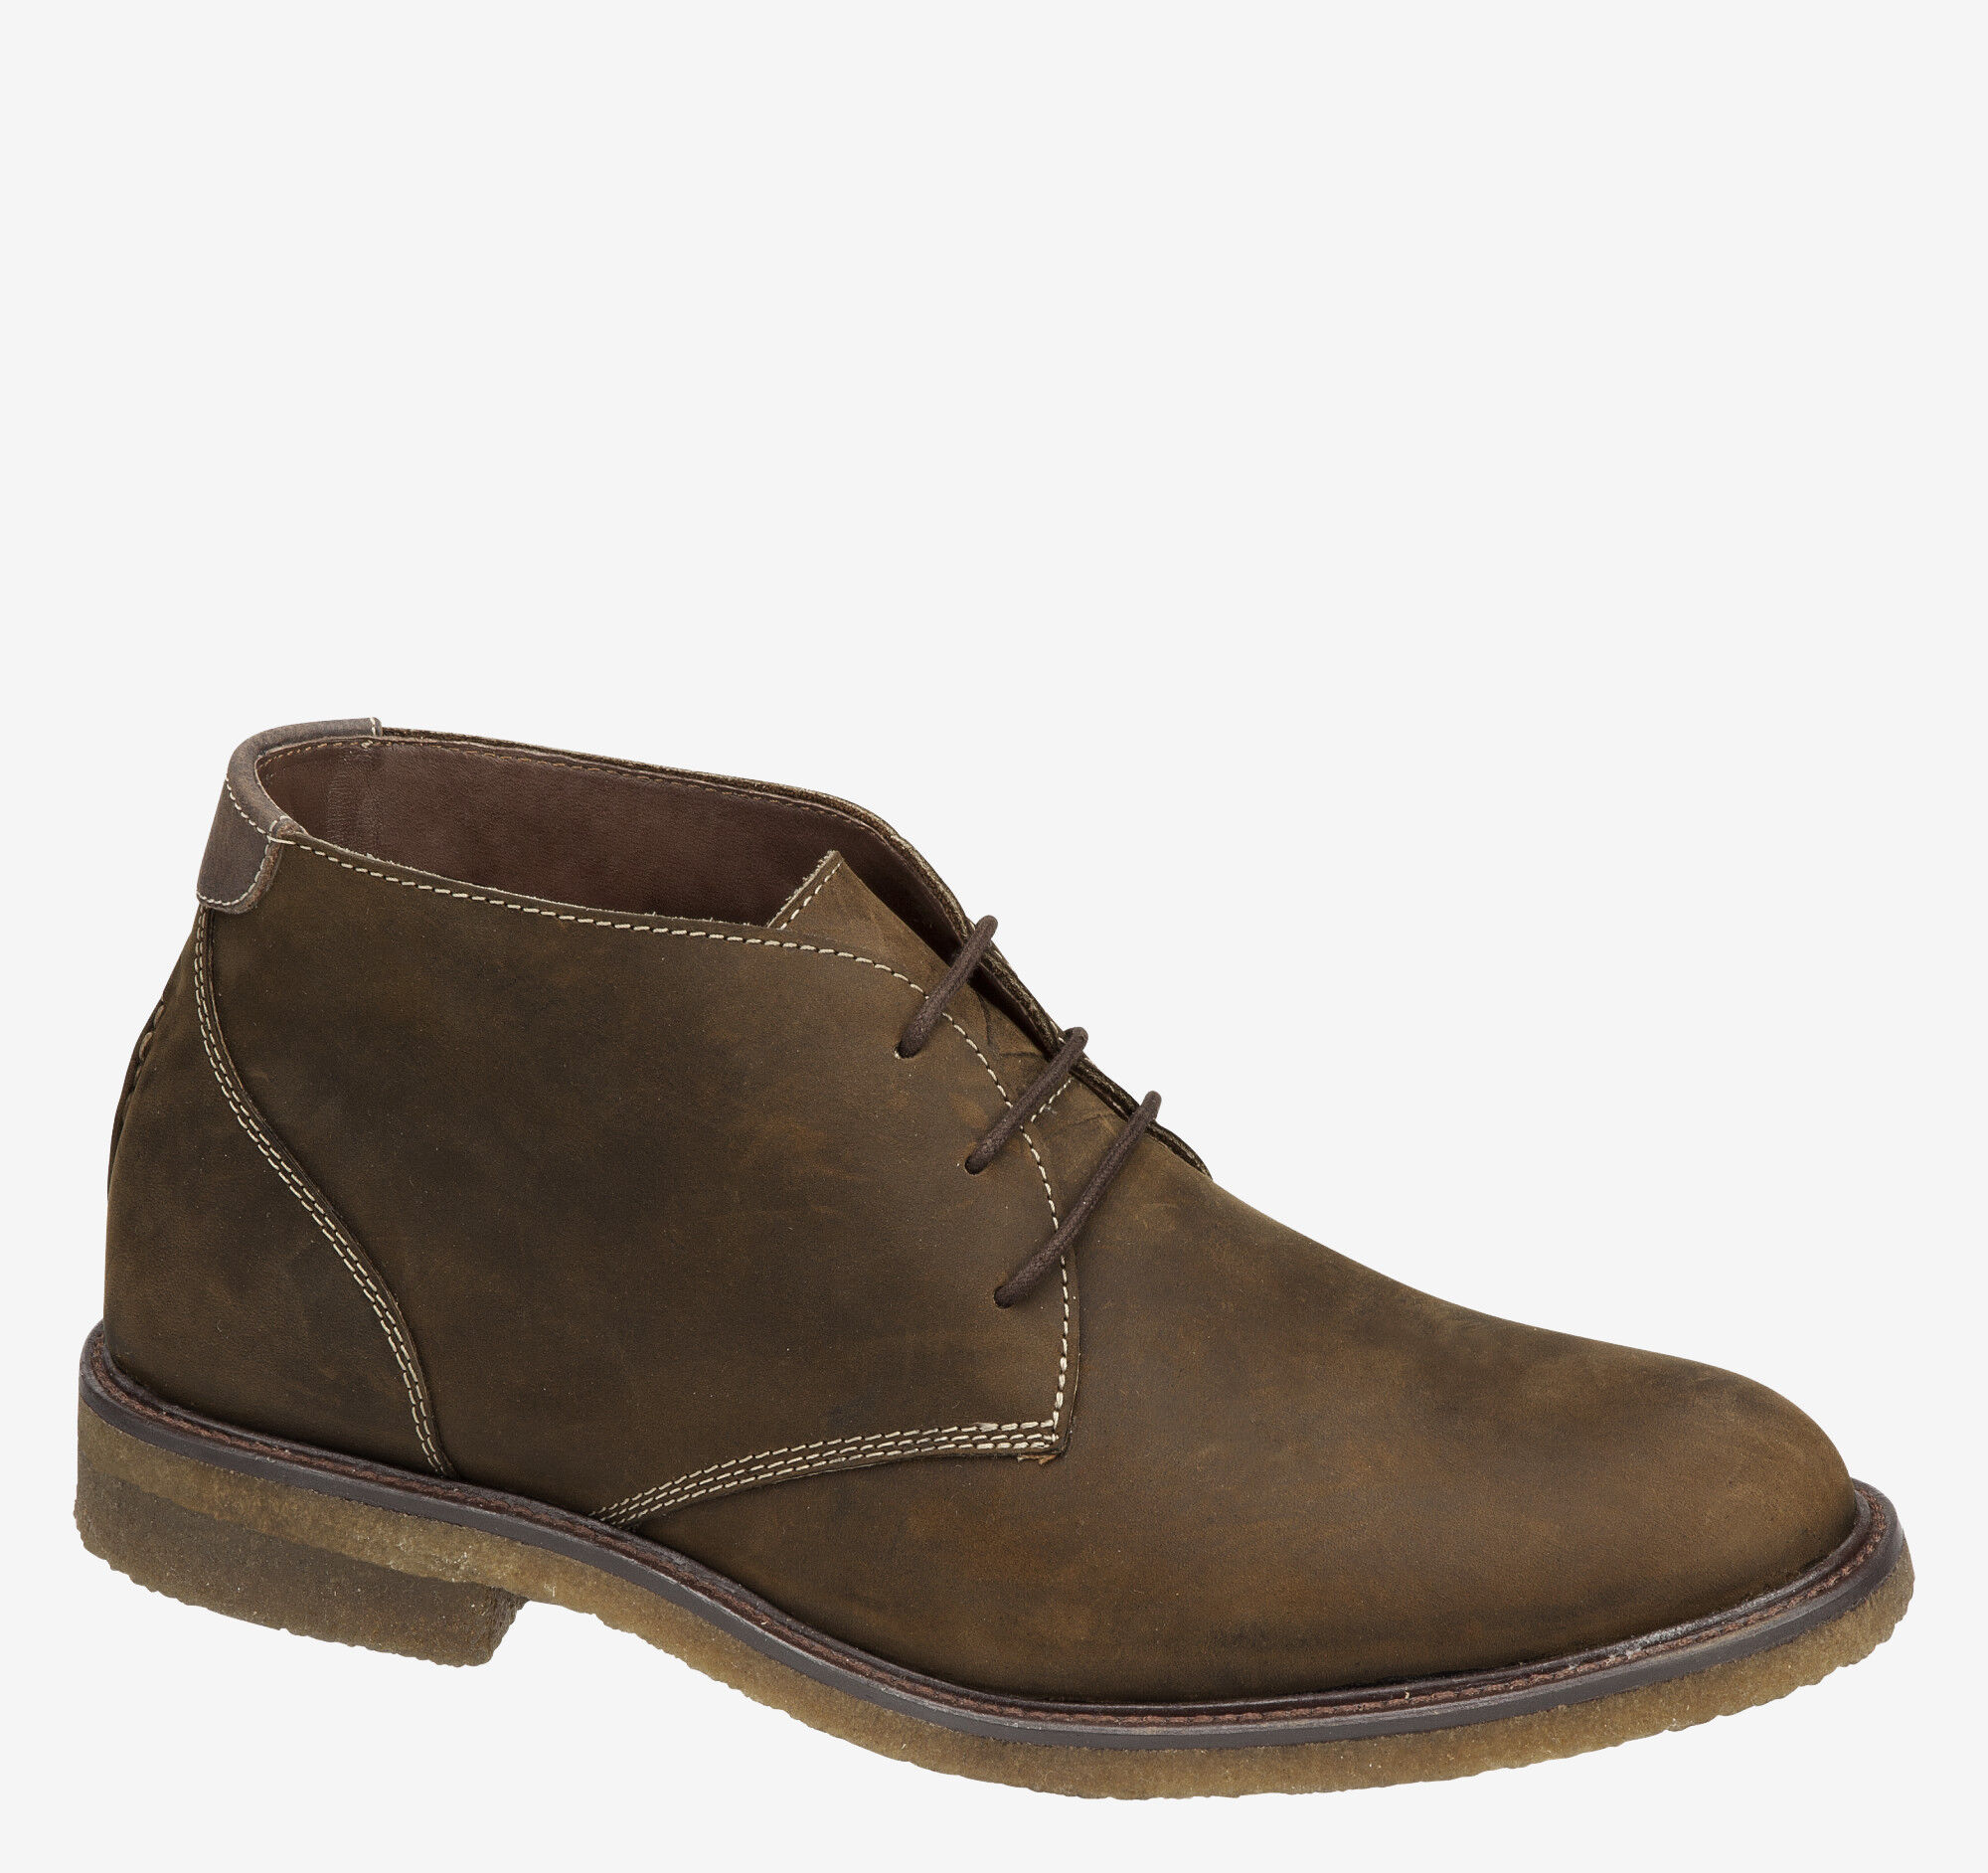 Johnston & Murphy Men's 'Copeland' Suede Chukka Boot jIeDHN